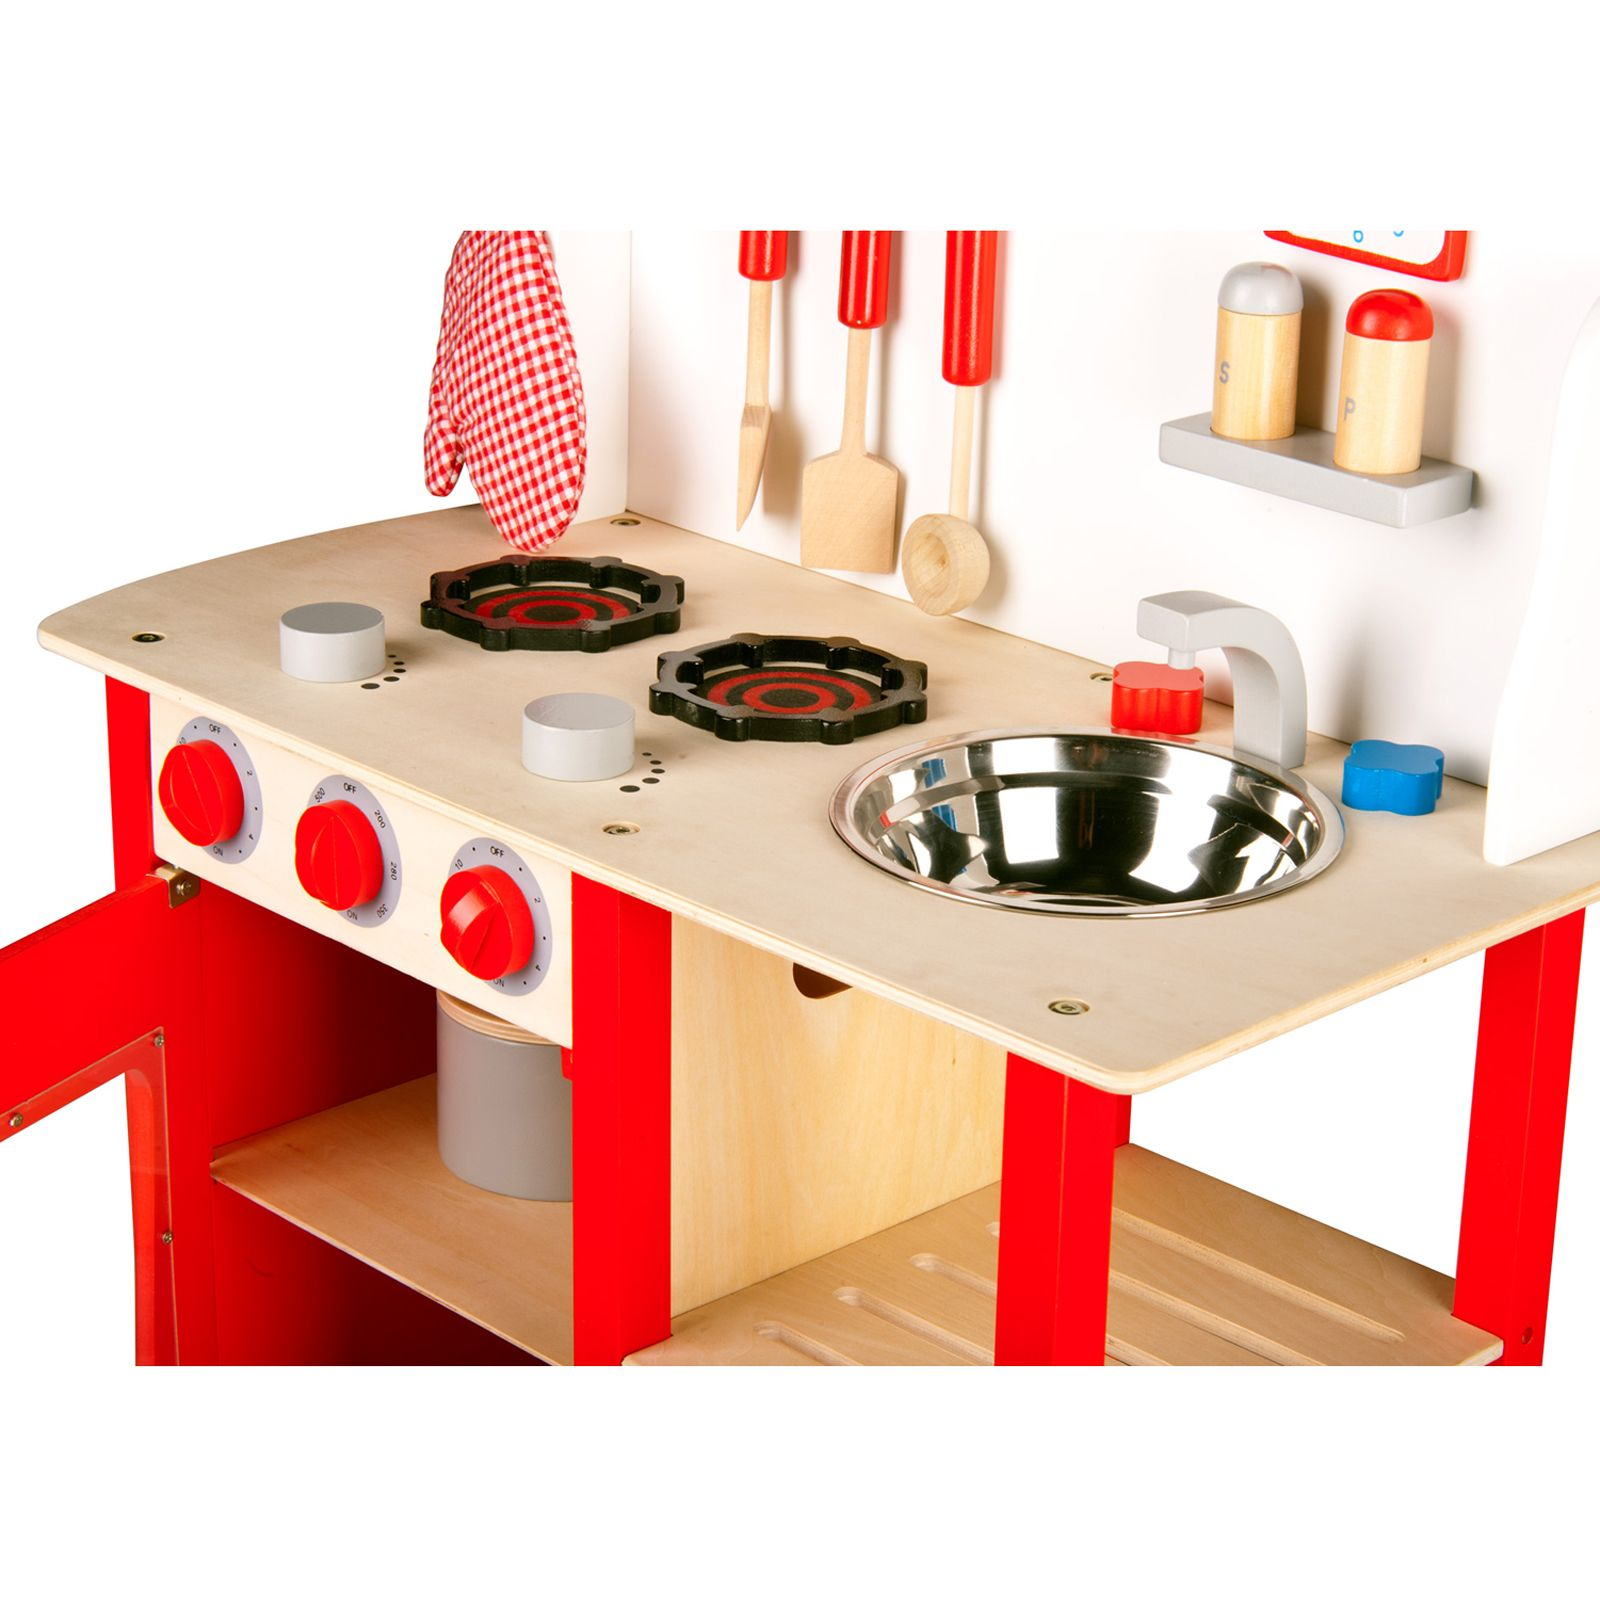 LEOMARK WOODEN KITCHEN CHILDRENS PLAY KITCHEN WITH